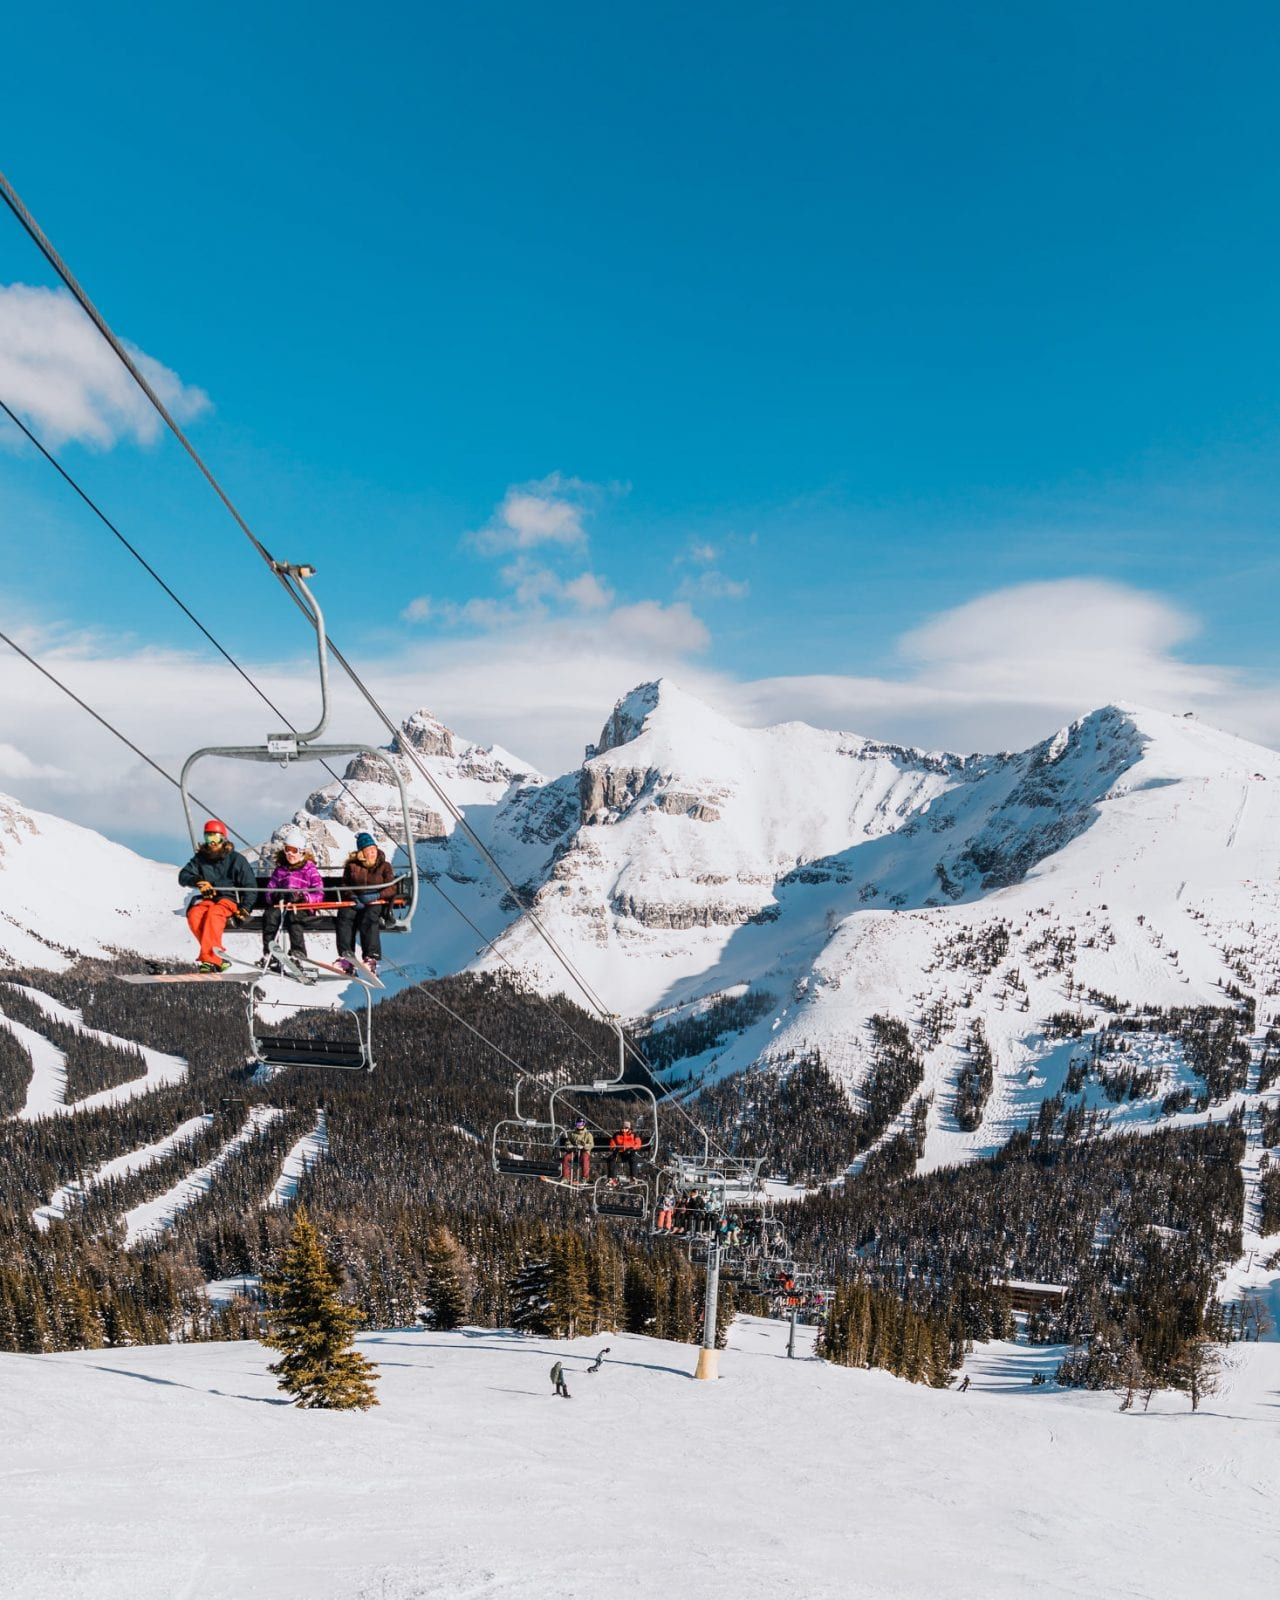 Image of the ski lift and mountain at Sunshine Village in Canada